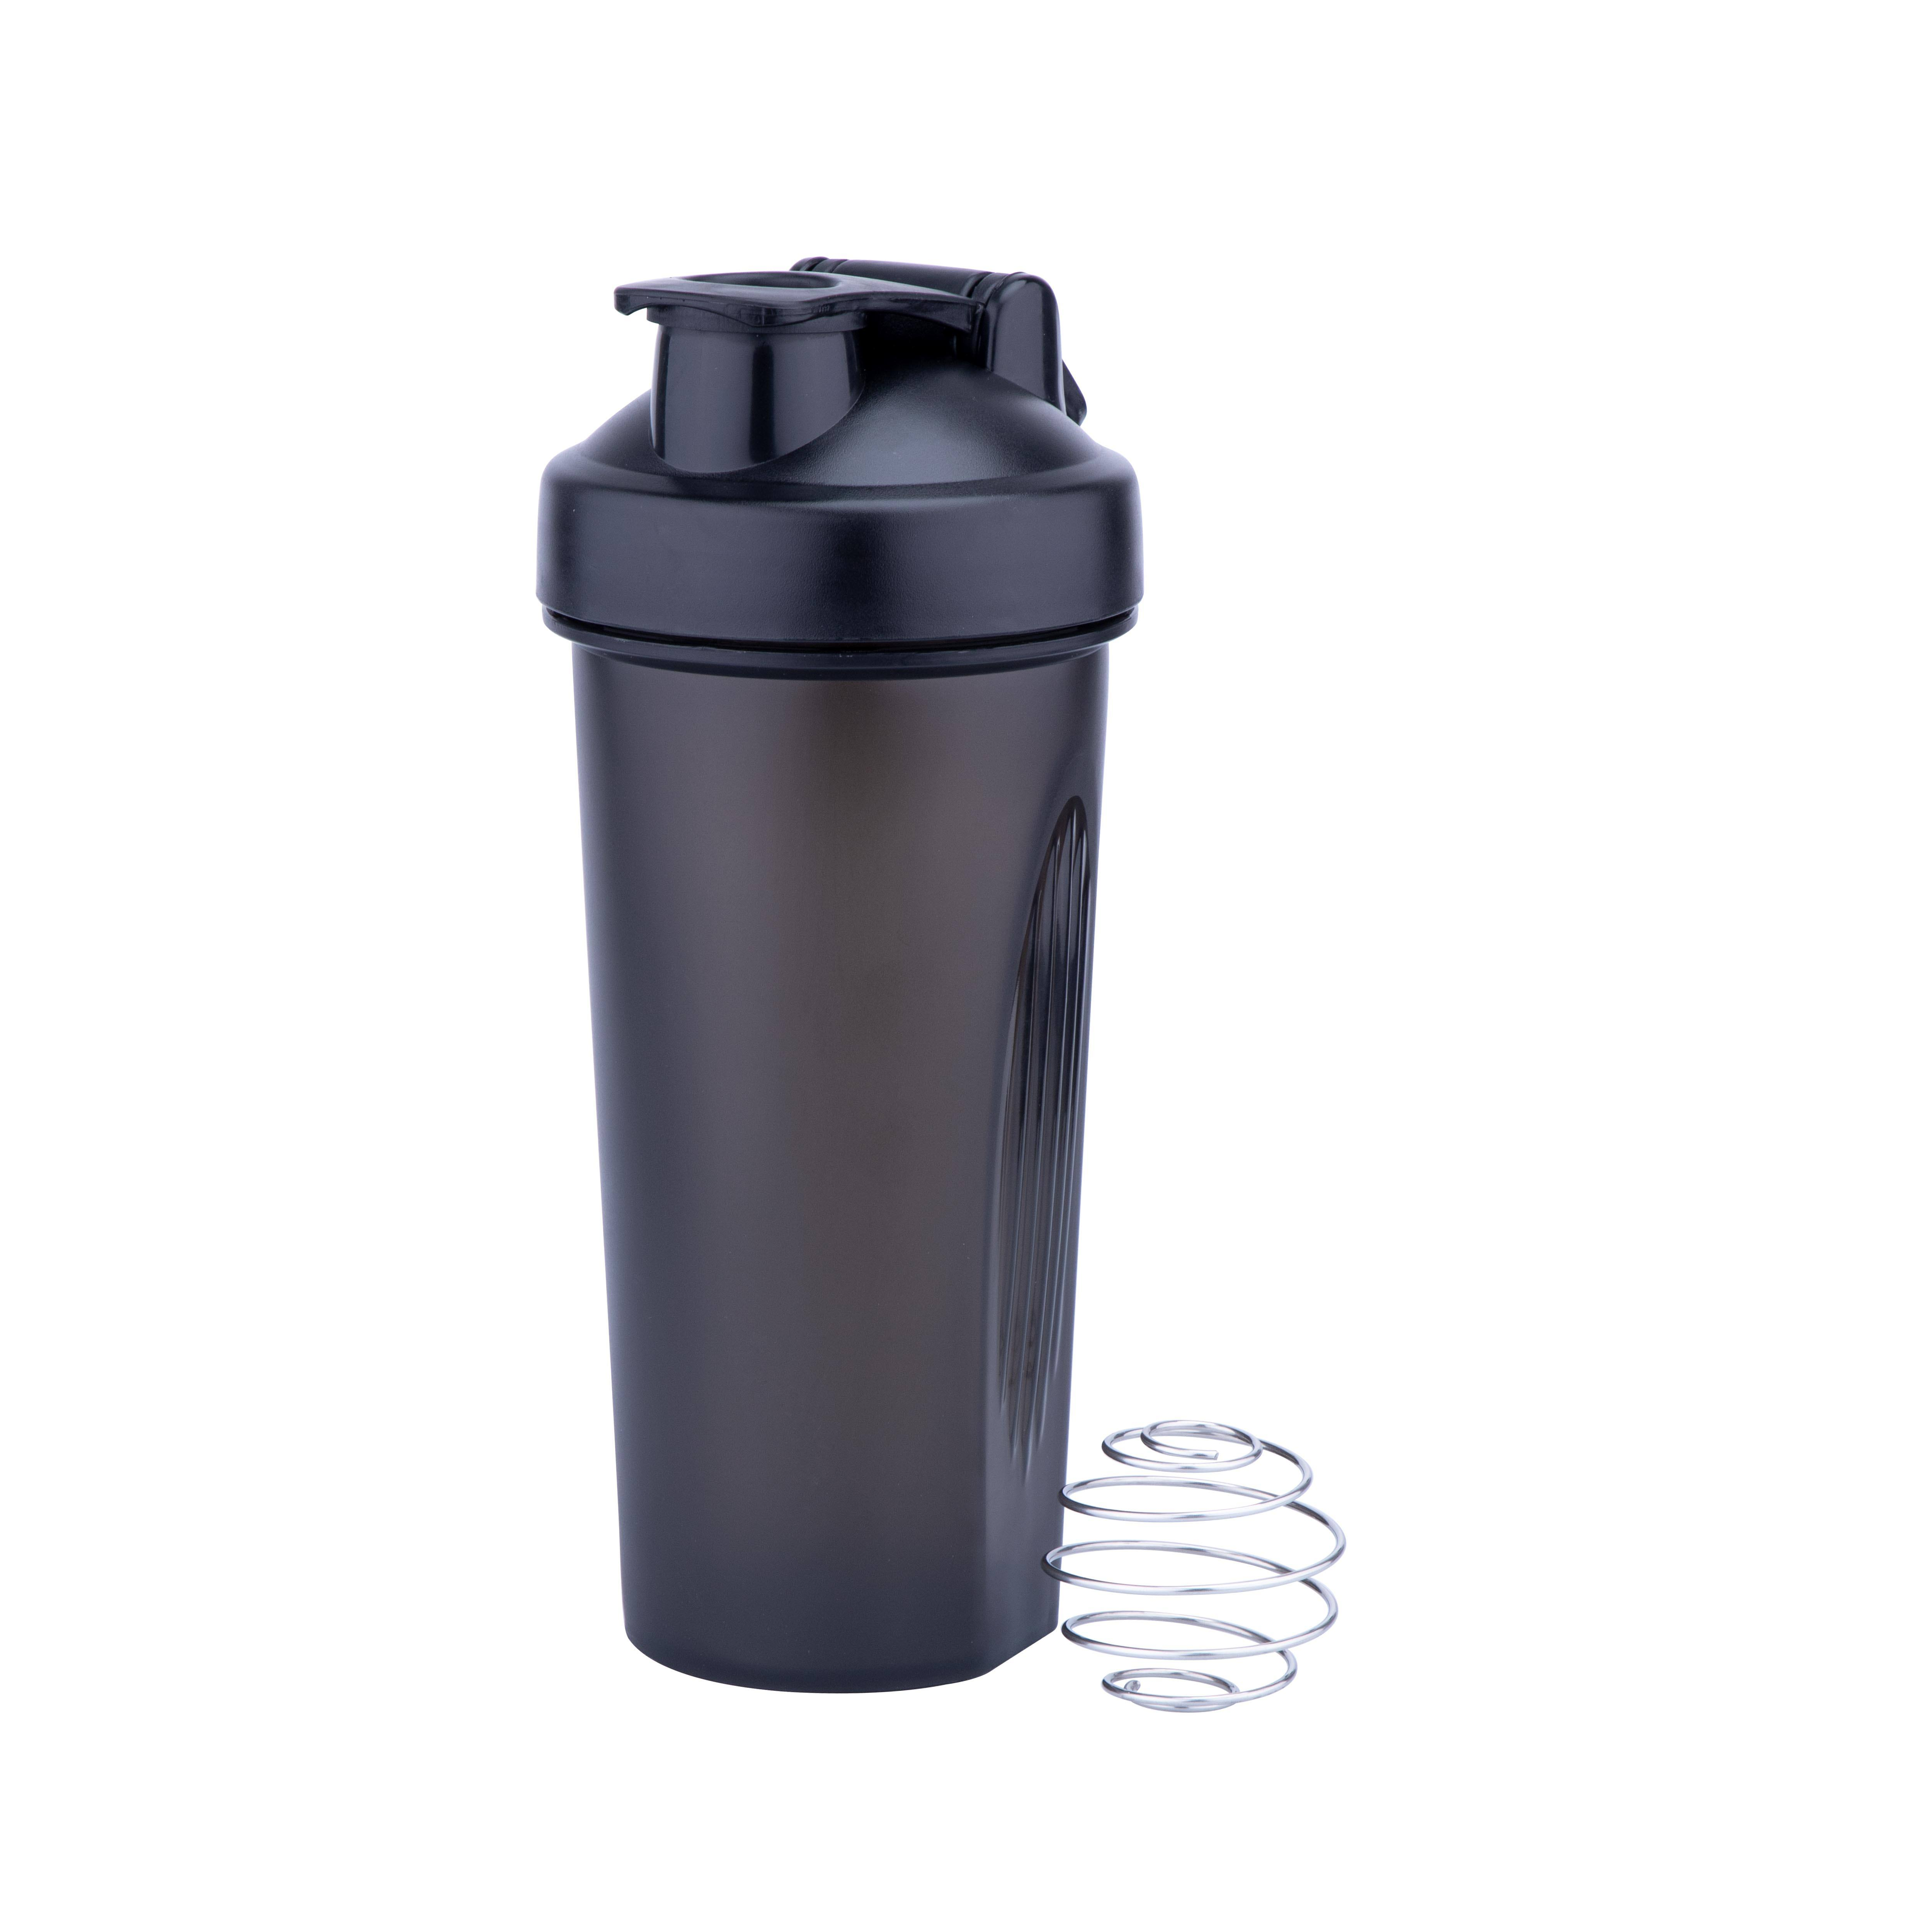 Commercio all'ingrosso 600ml Classico Loop Top Proteina <span class=keywords><strong>Shaker</strong></span> <span class=keywords><strong>Bottiglia</strong></span> Palestra Riciclato di Plastica BPA Libero Per Il Fitness Proteina <span class=keywords><strong>Shaker</strong></span> <span class=keywords><strong>Bottiglia</strong></span>